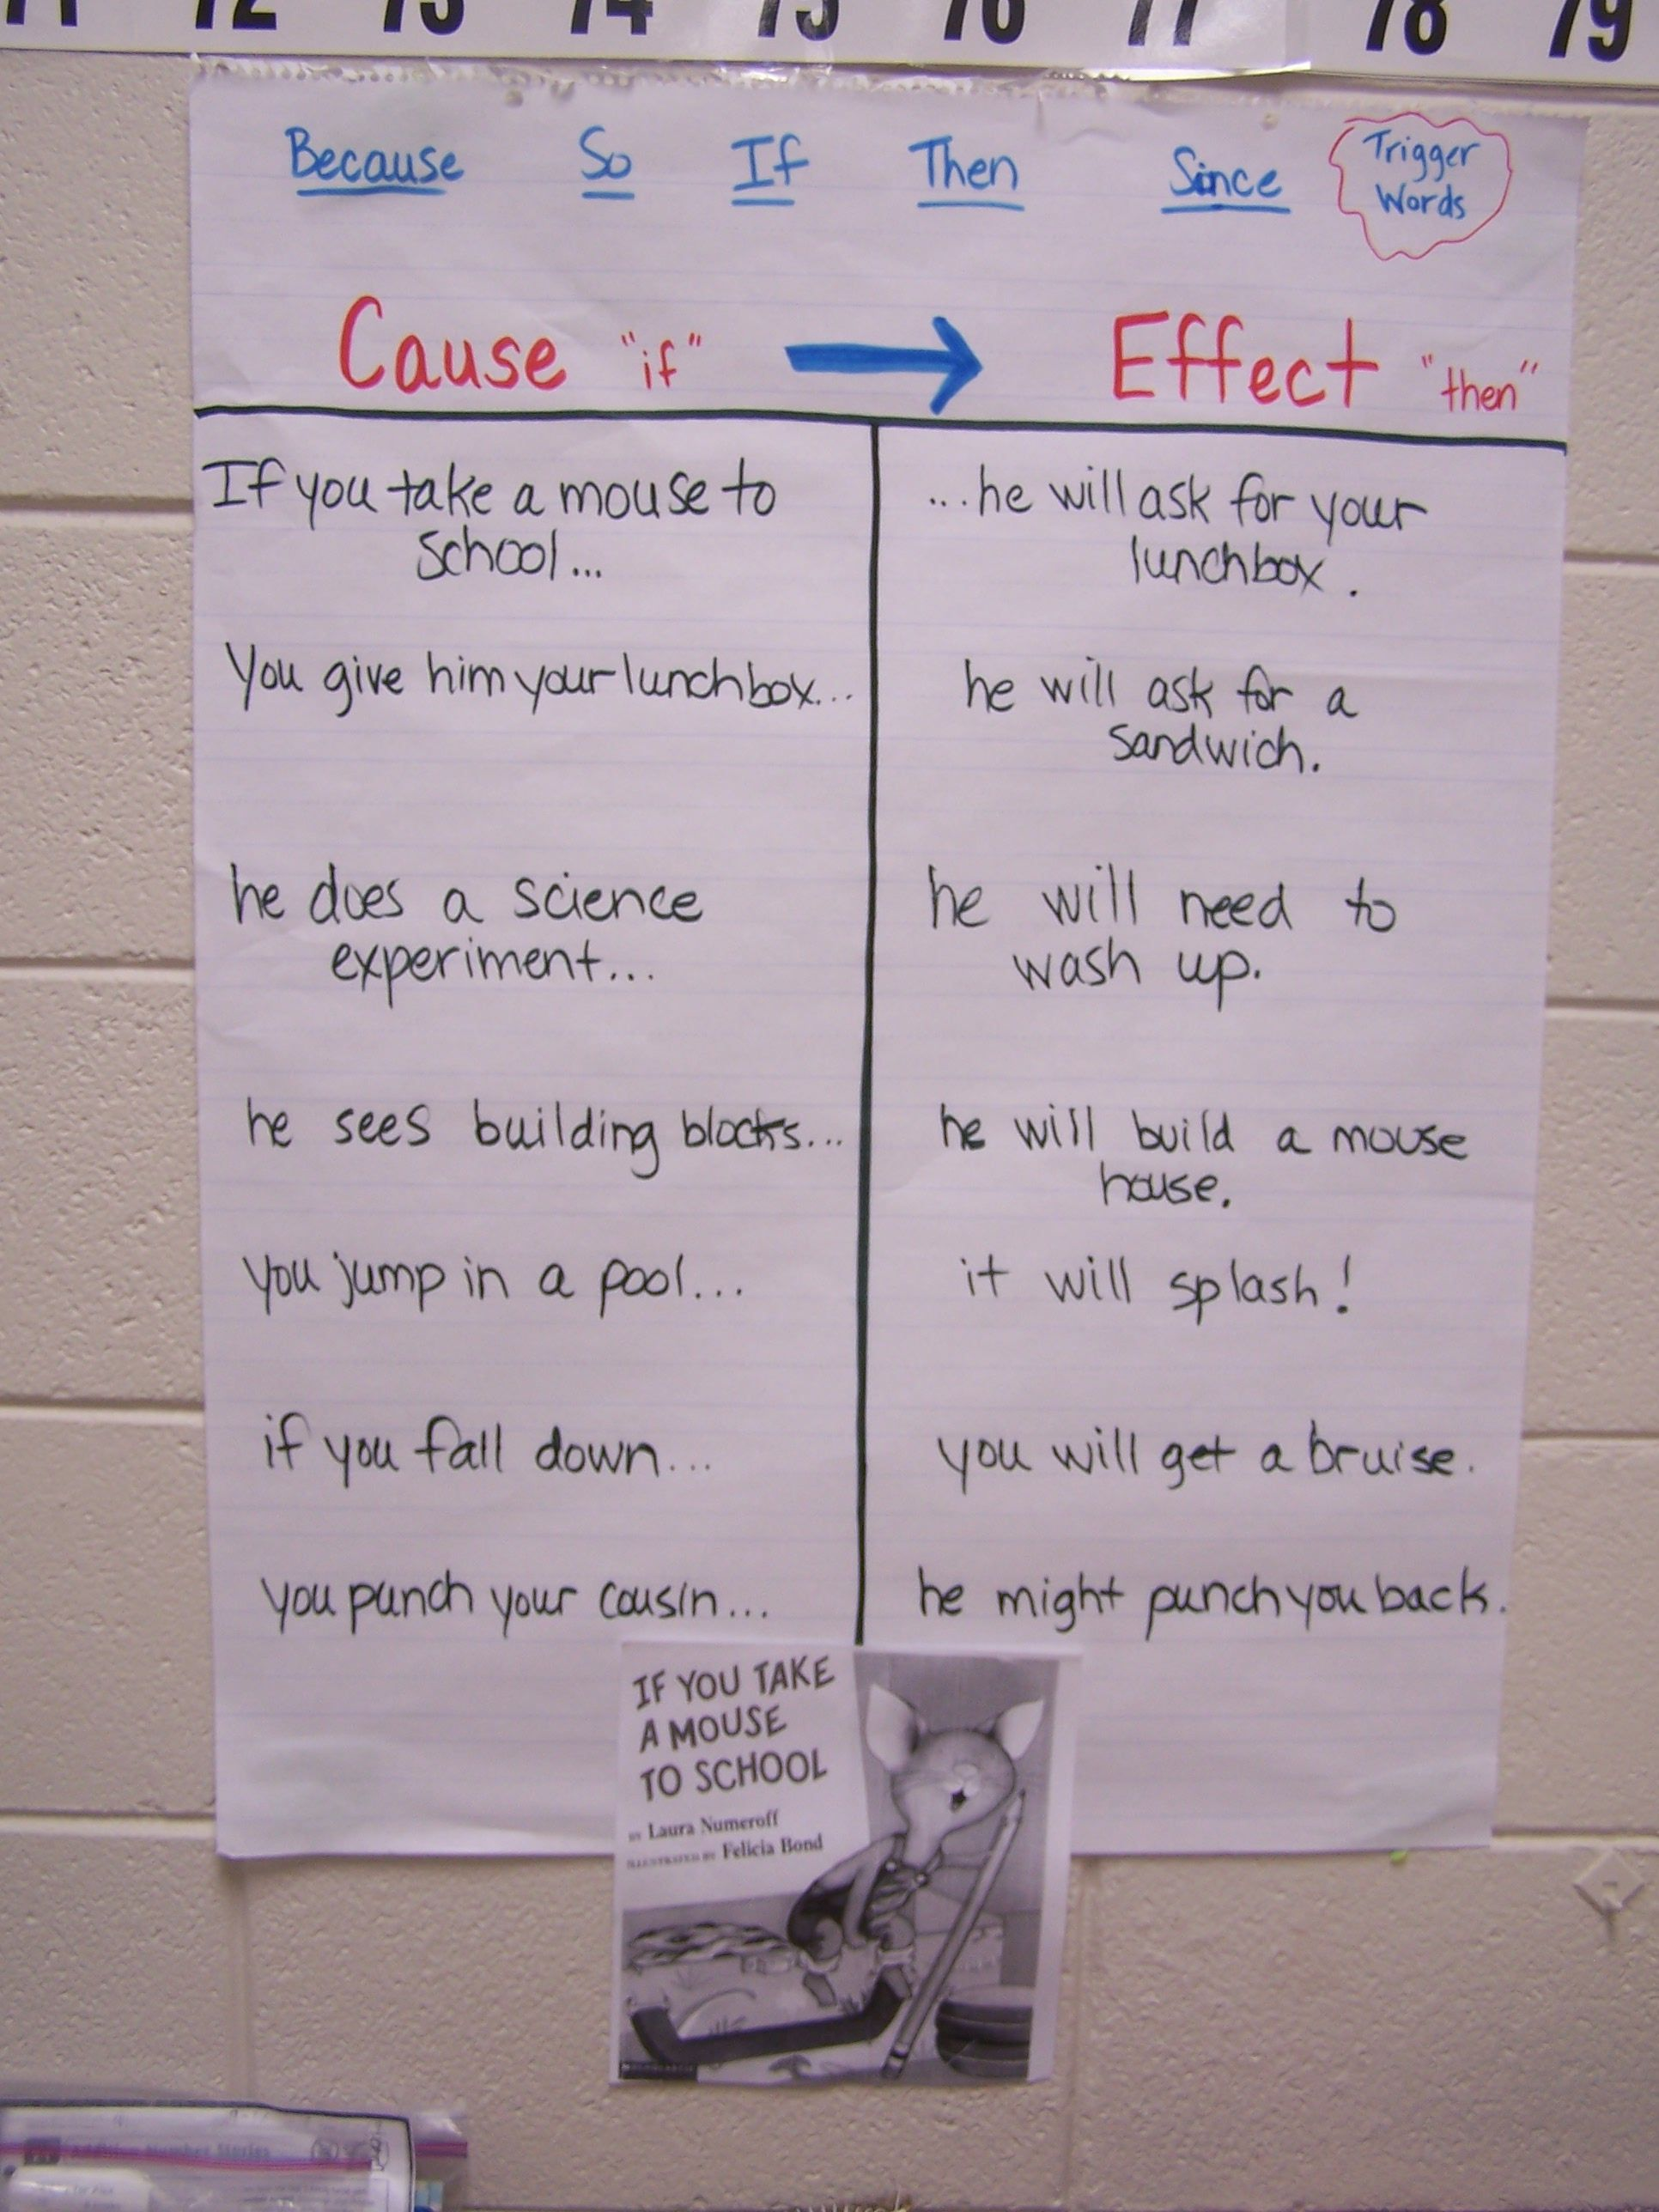 Cause And Effect Chart Eresting Way To Teach